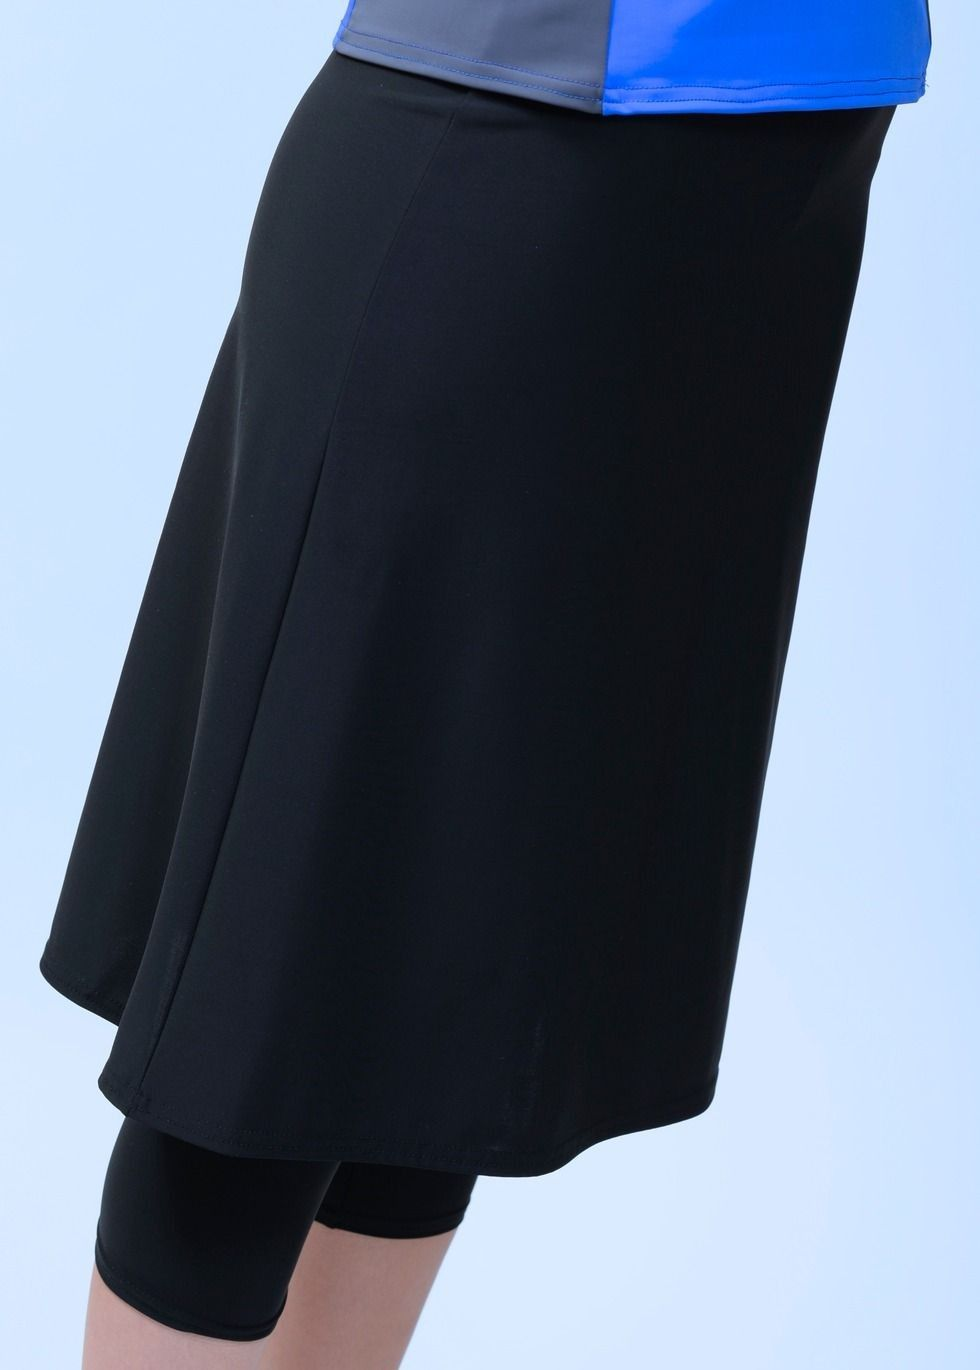 36d6b796122 Our black swim skirt with leggings attached is great for more active ...